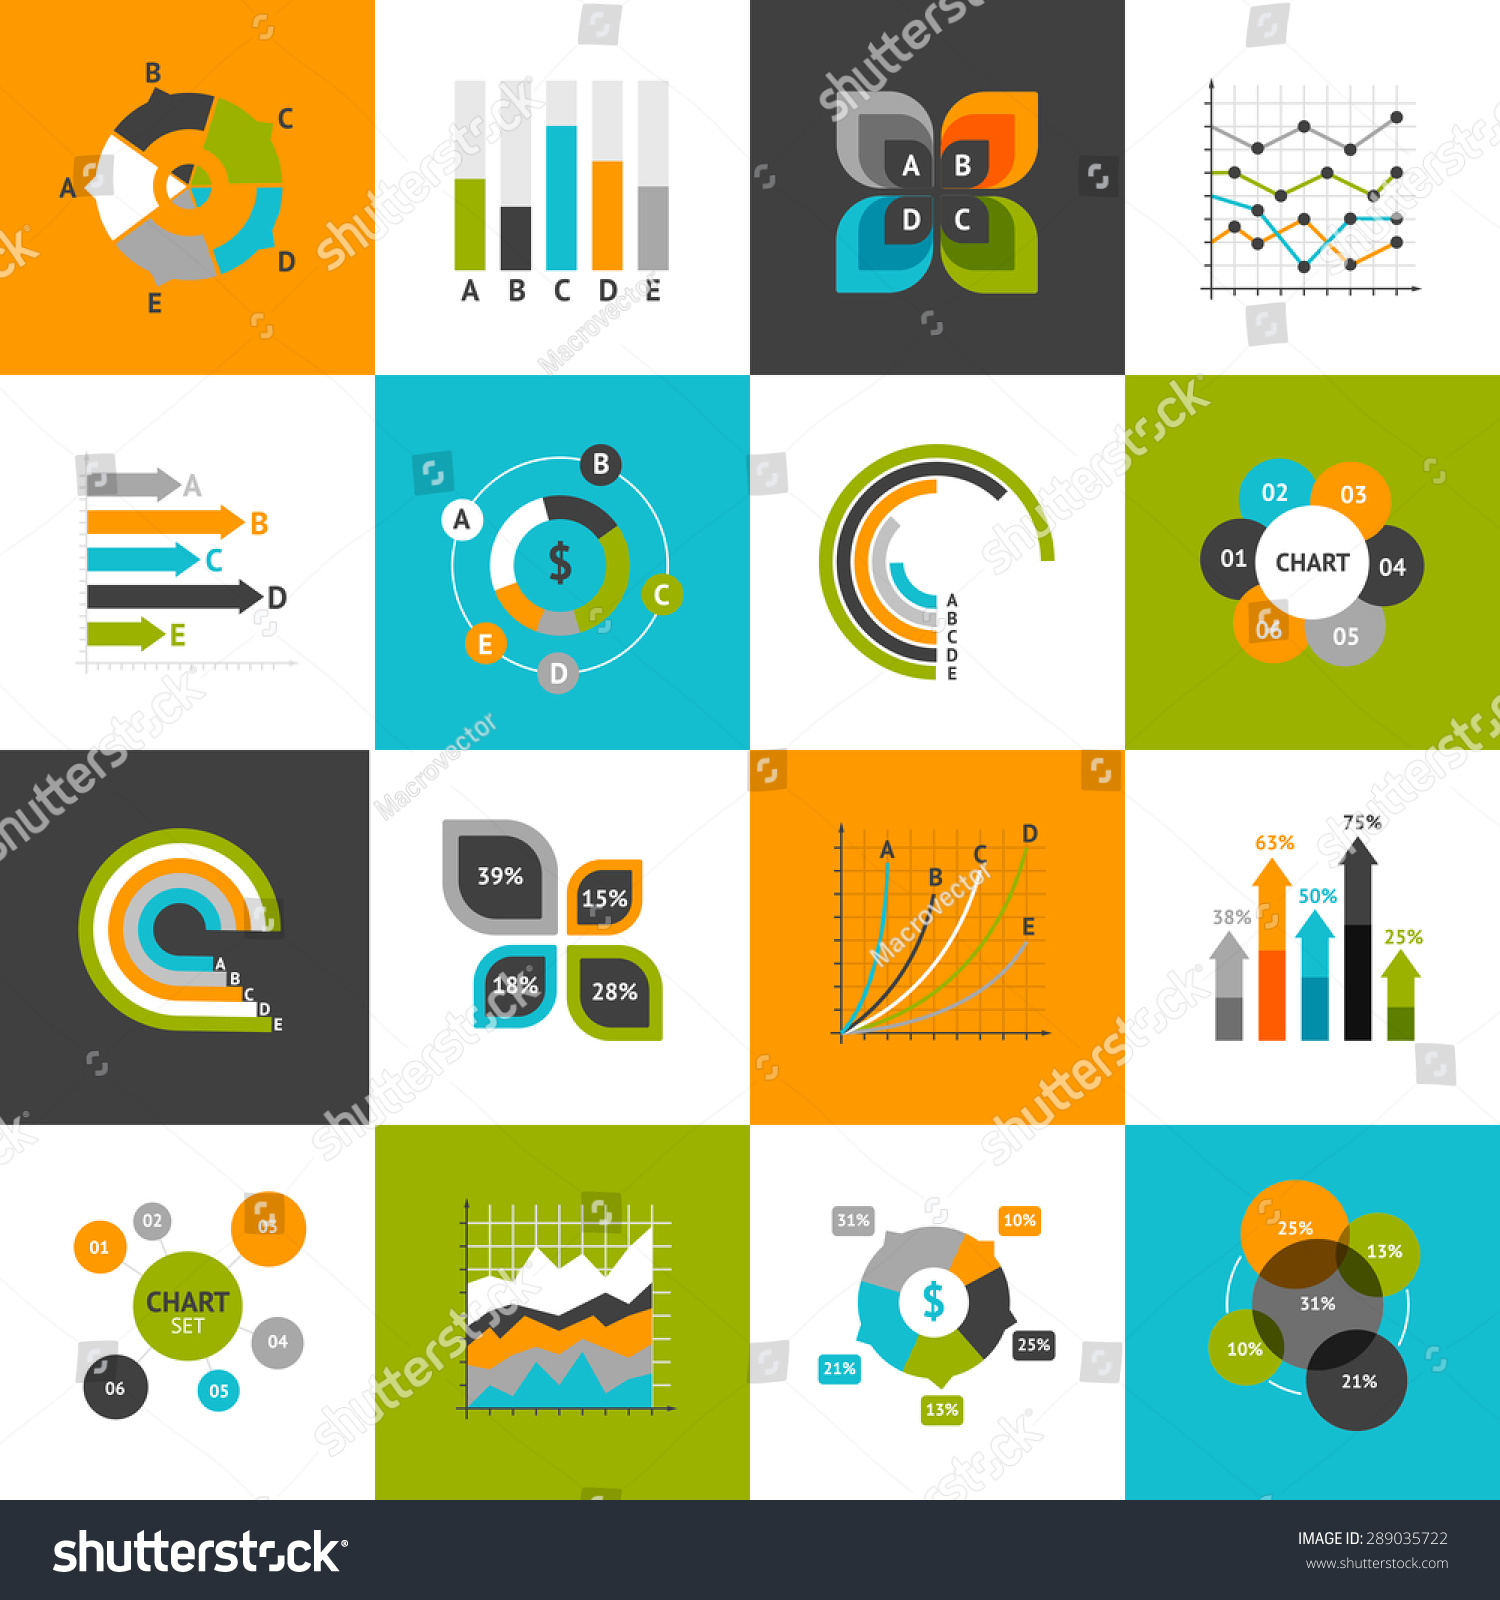 different types business charts infographs icons stock vector different types of business charts and infographs icons set isolated vector illustration